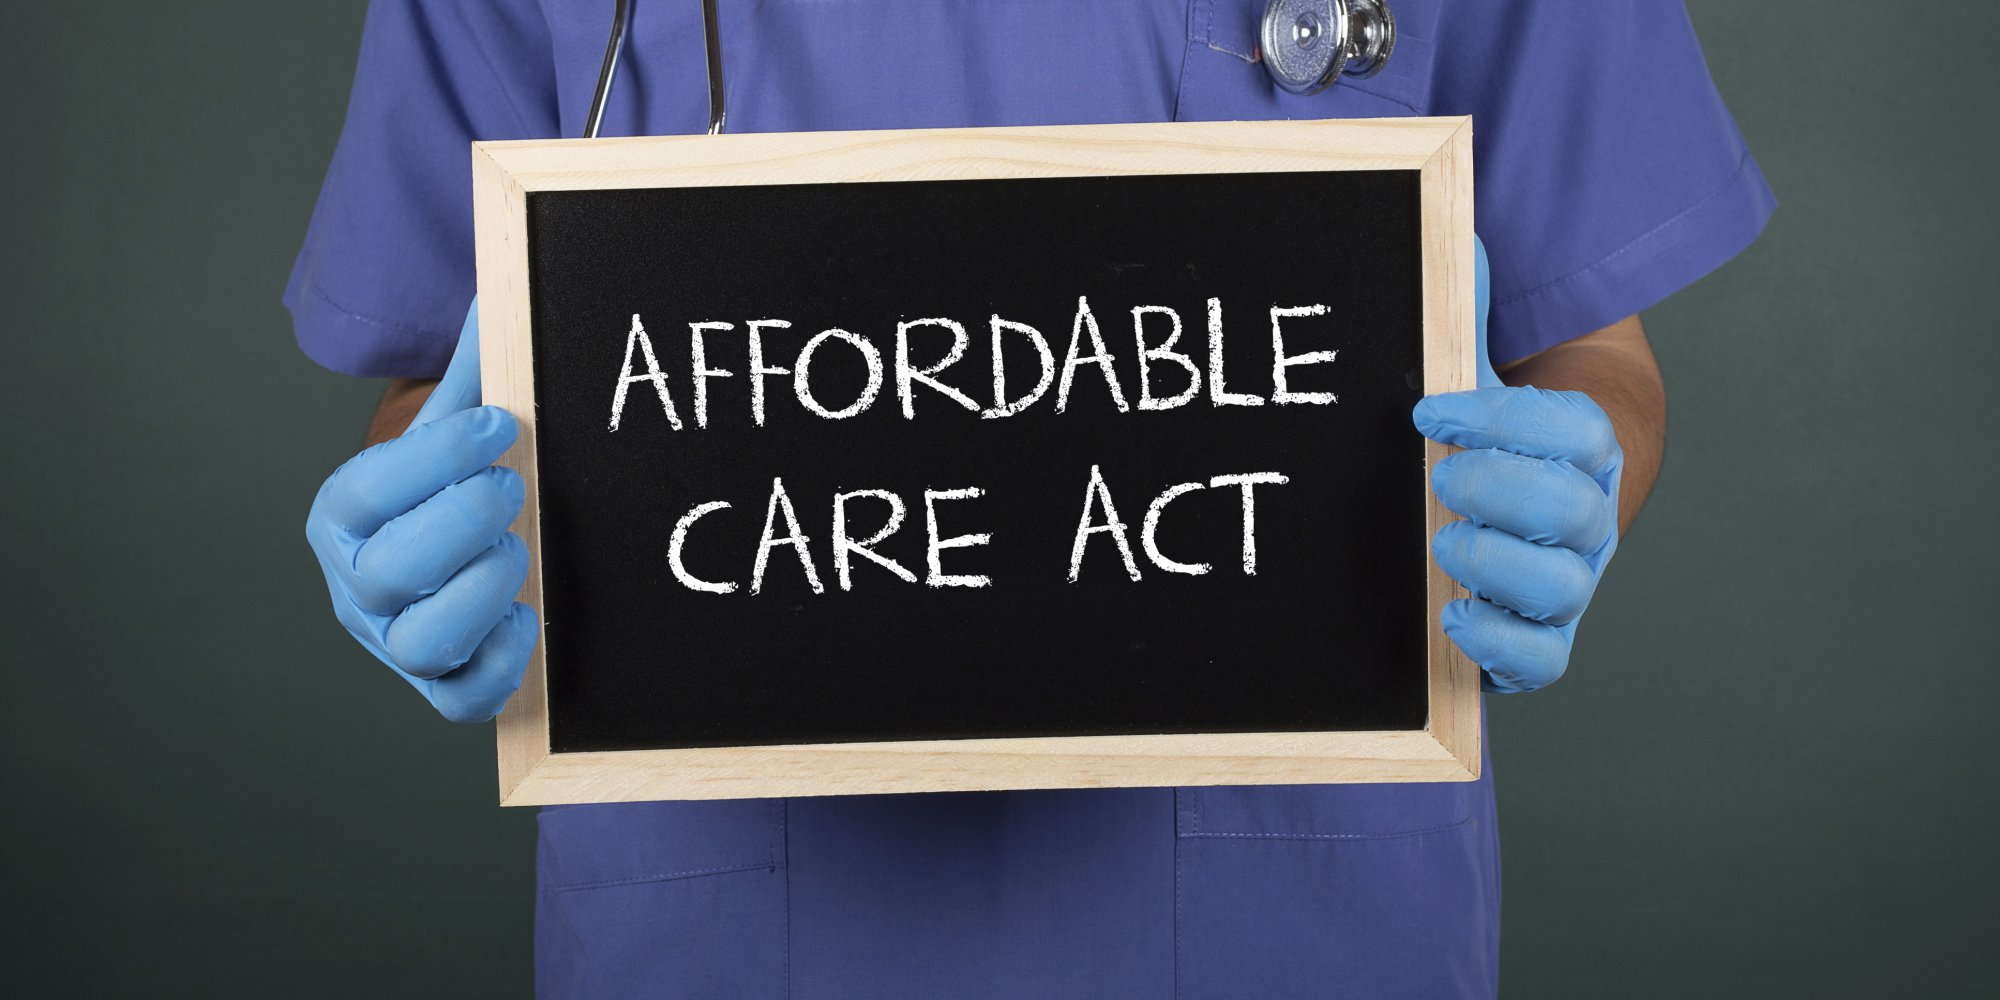 affordable care act and divorce (and other life changes) - kls